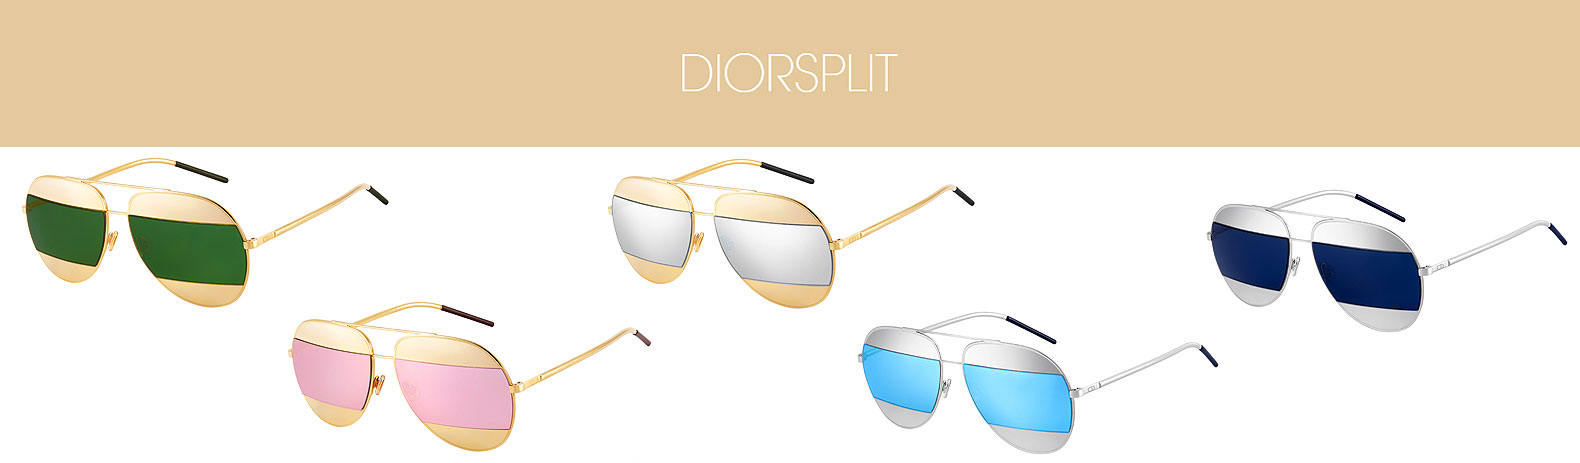 diorsplit-dior-split-sunglasses-ad-colors-poster-latest-spring-summer-2016-top-best